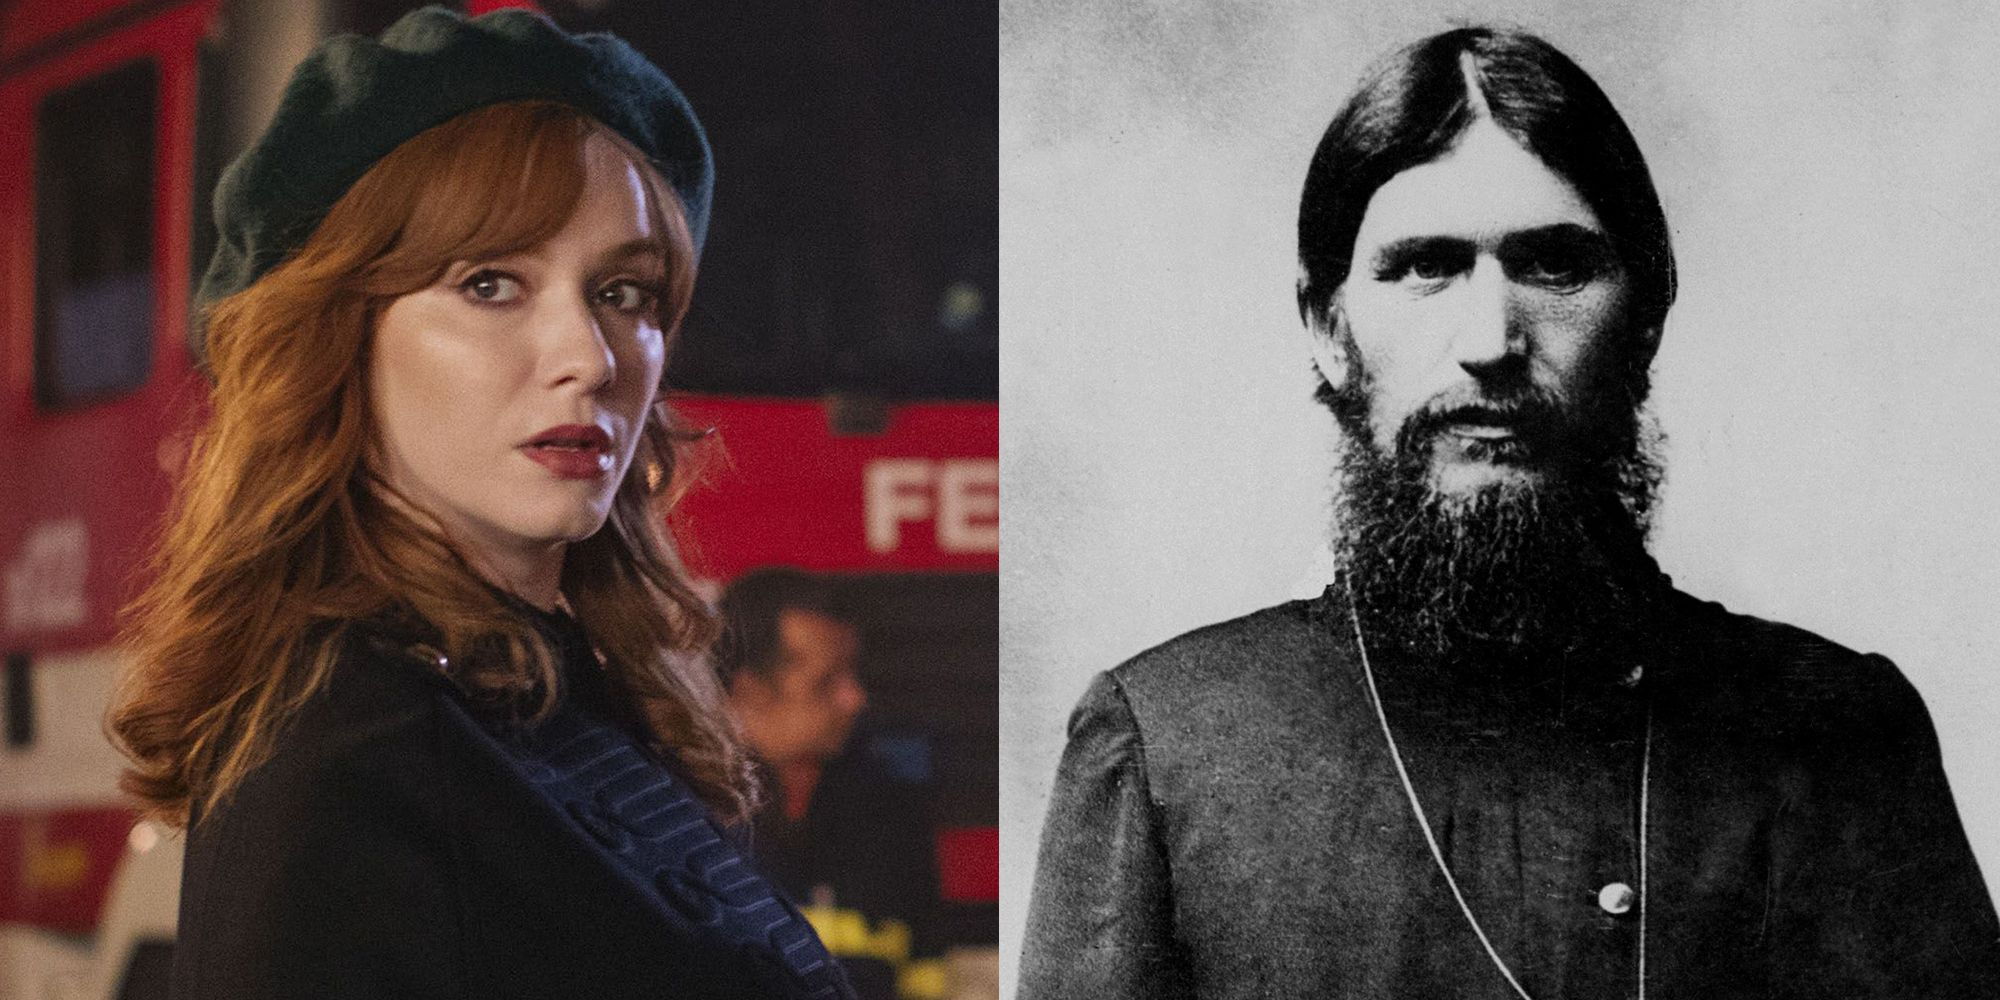 Did Tsarina Alexandra Feodorovna and Rasputin Have An Affair